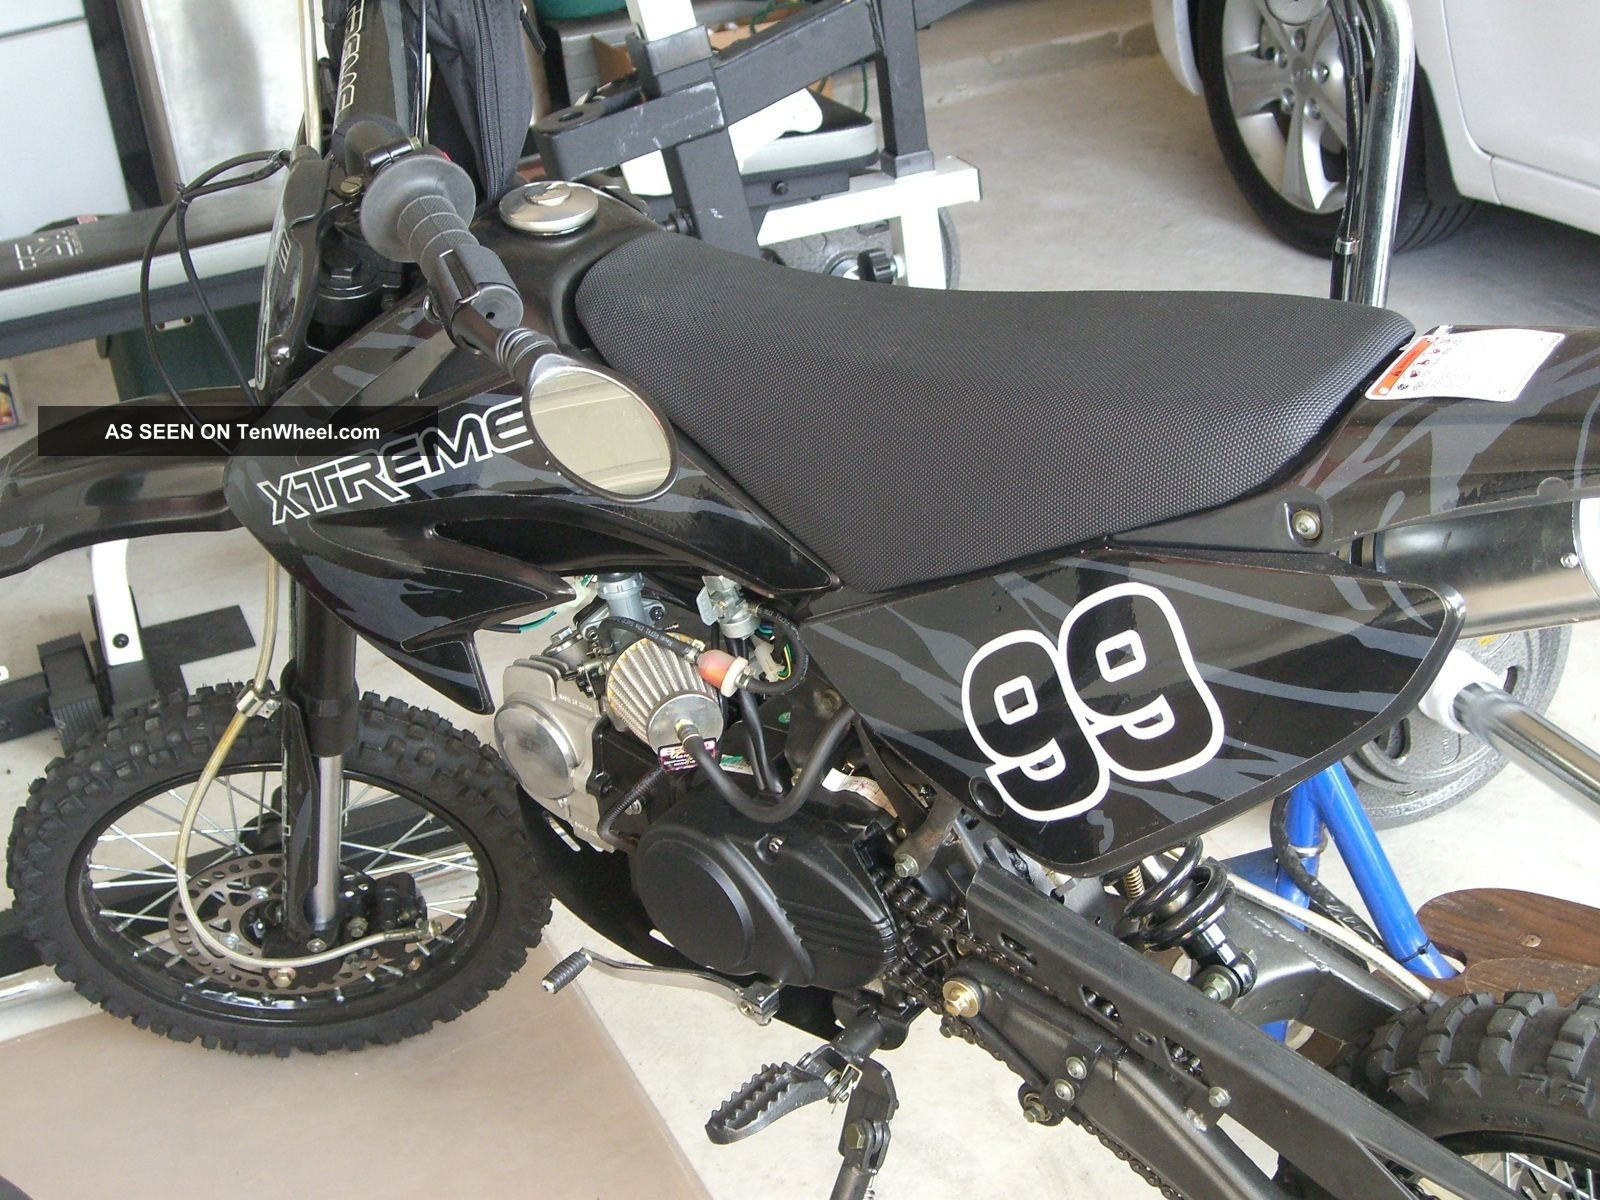 2012 Apollo Adp - 125 X - Treme 125cc Off - Road Motorcycle (accessories Included) Other Makes photo